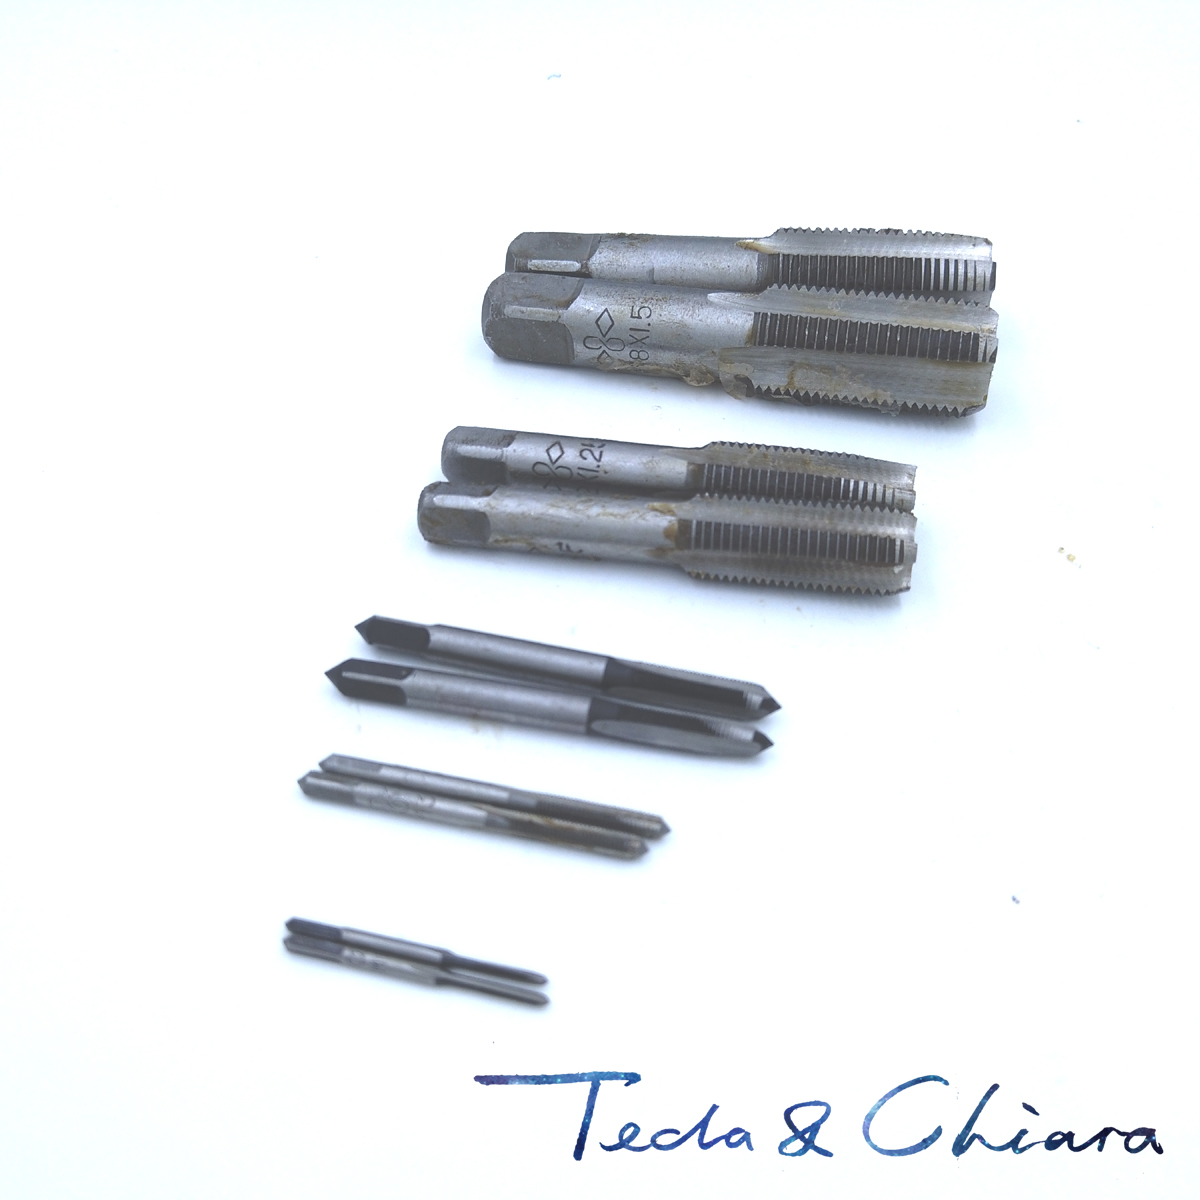 1Set M8 X 0.75mm 1mm 1.25mm Taper And Plug Metric Tap Pitch For Mold Machining * 0.75 1 1.25